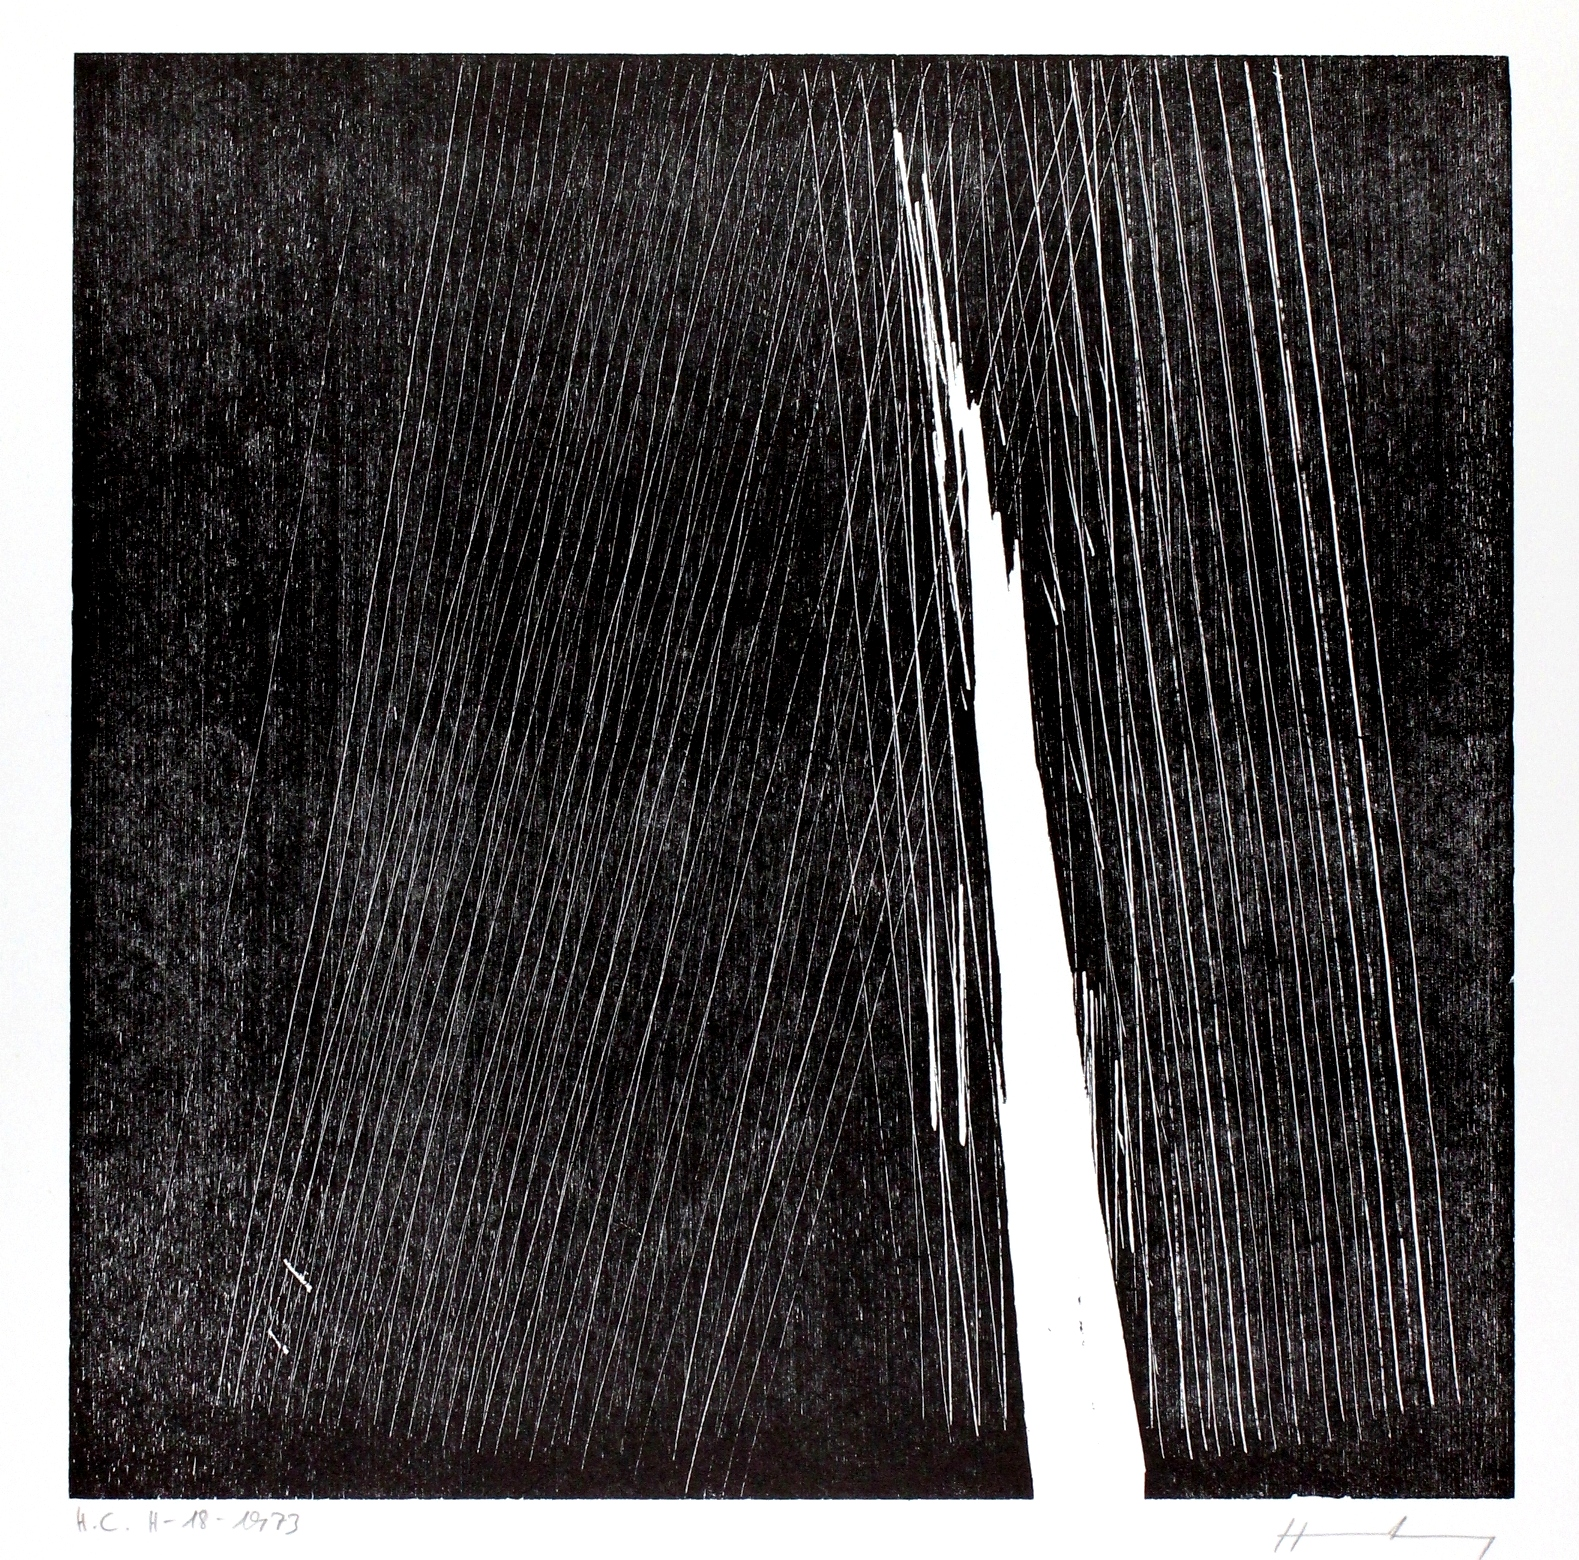 H-18-1973 by Hans Hartung